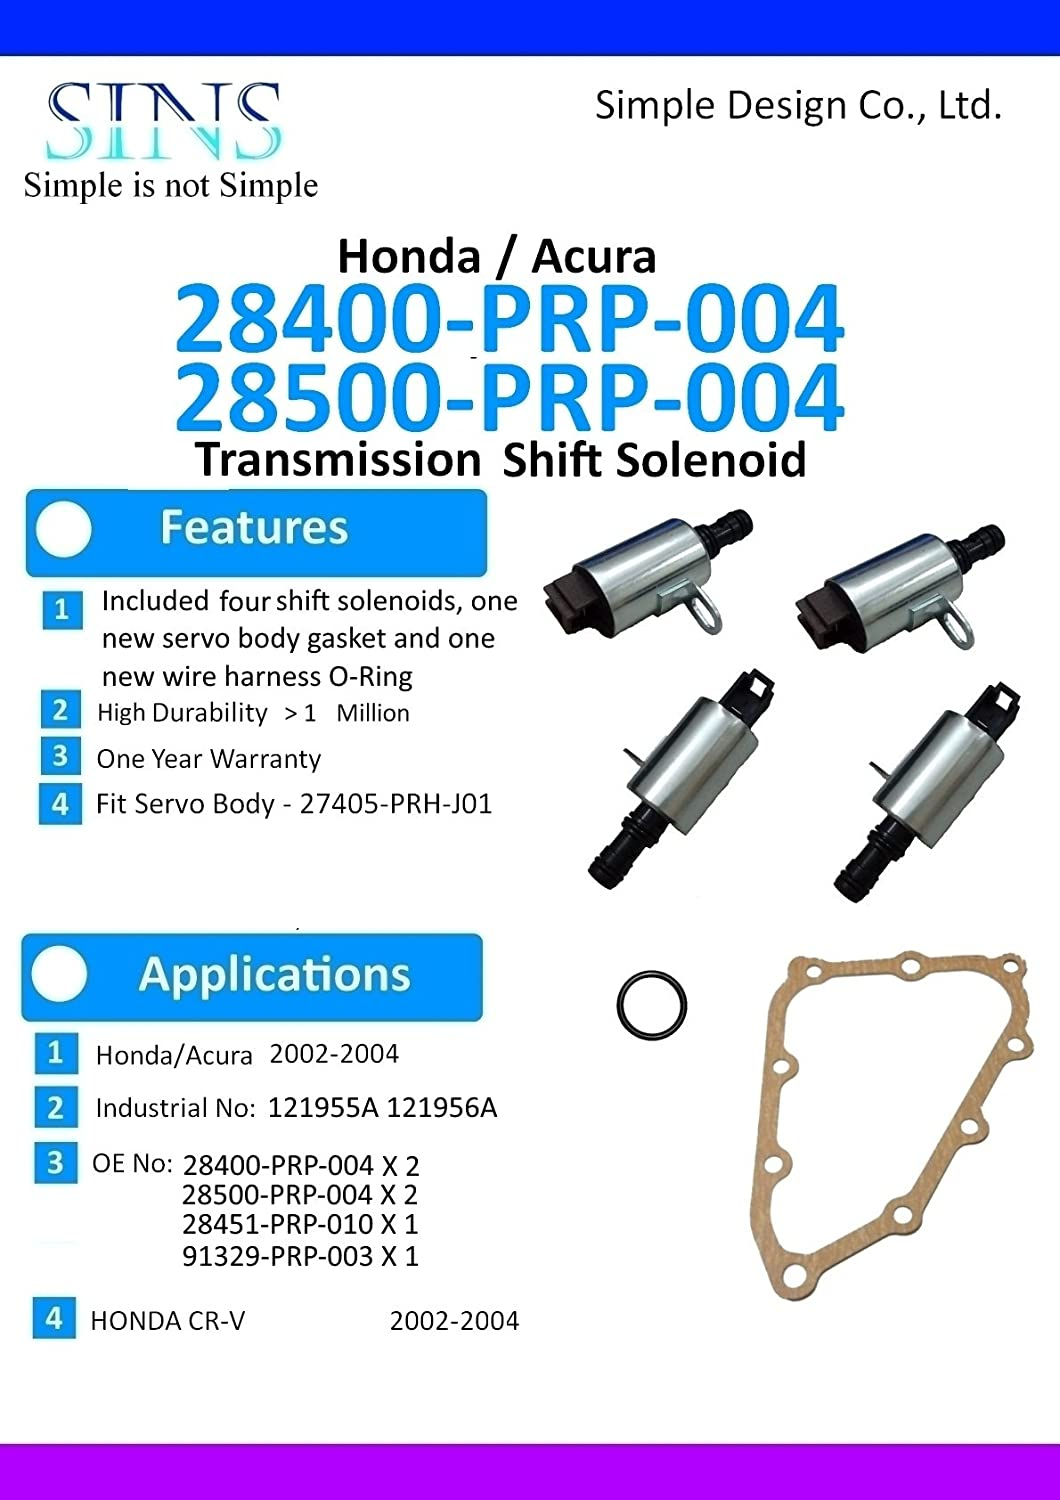 Amazon.com: Honda CR-V 02-04 Transmission Solenoid Kit(4pcs/set)  28400-PRP-004 28500-PRP-004 with Gasket and Wire Harness O-Ring: Automotive